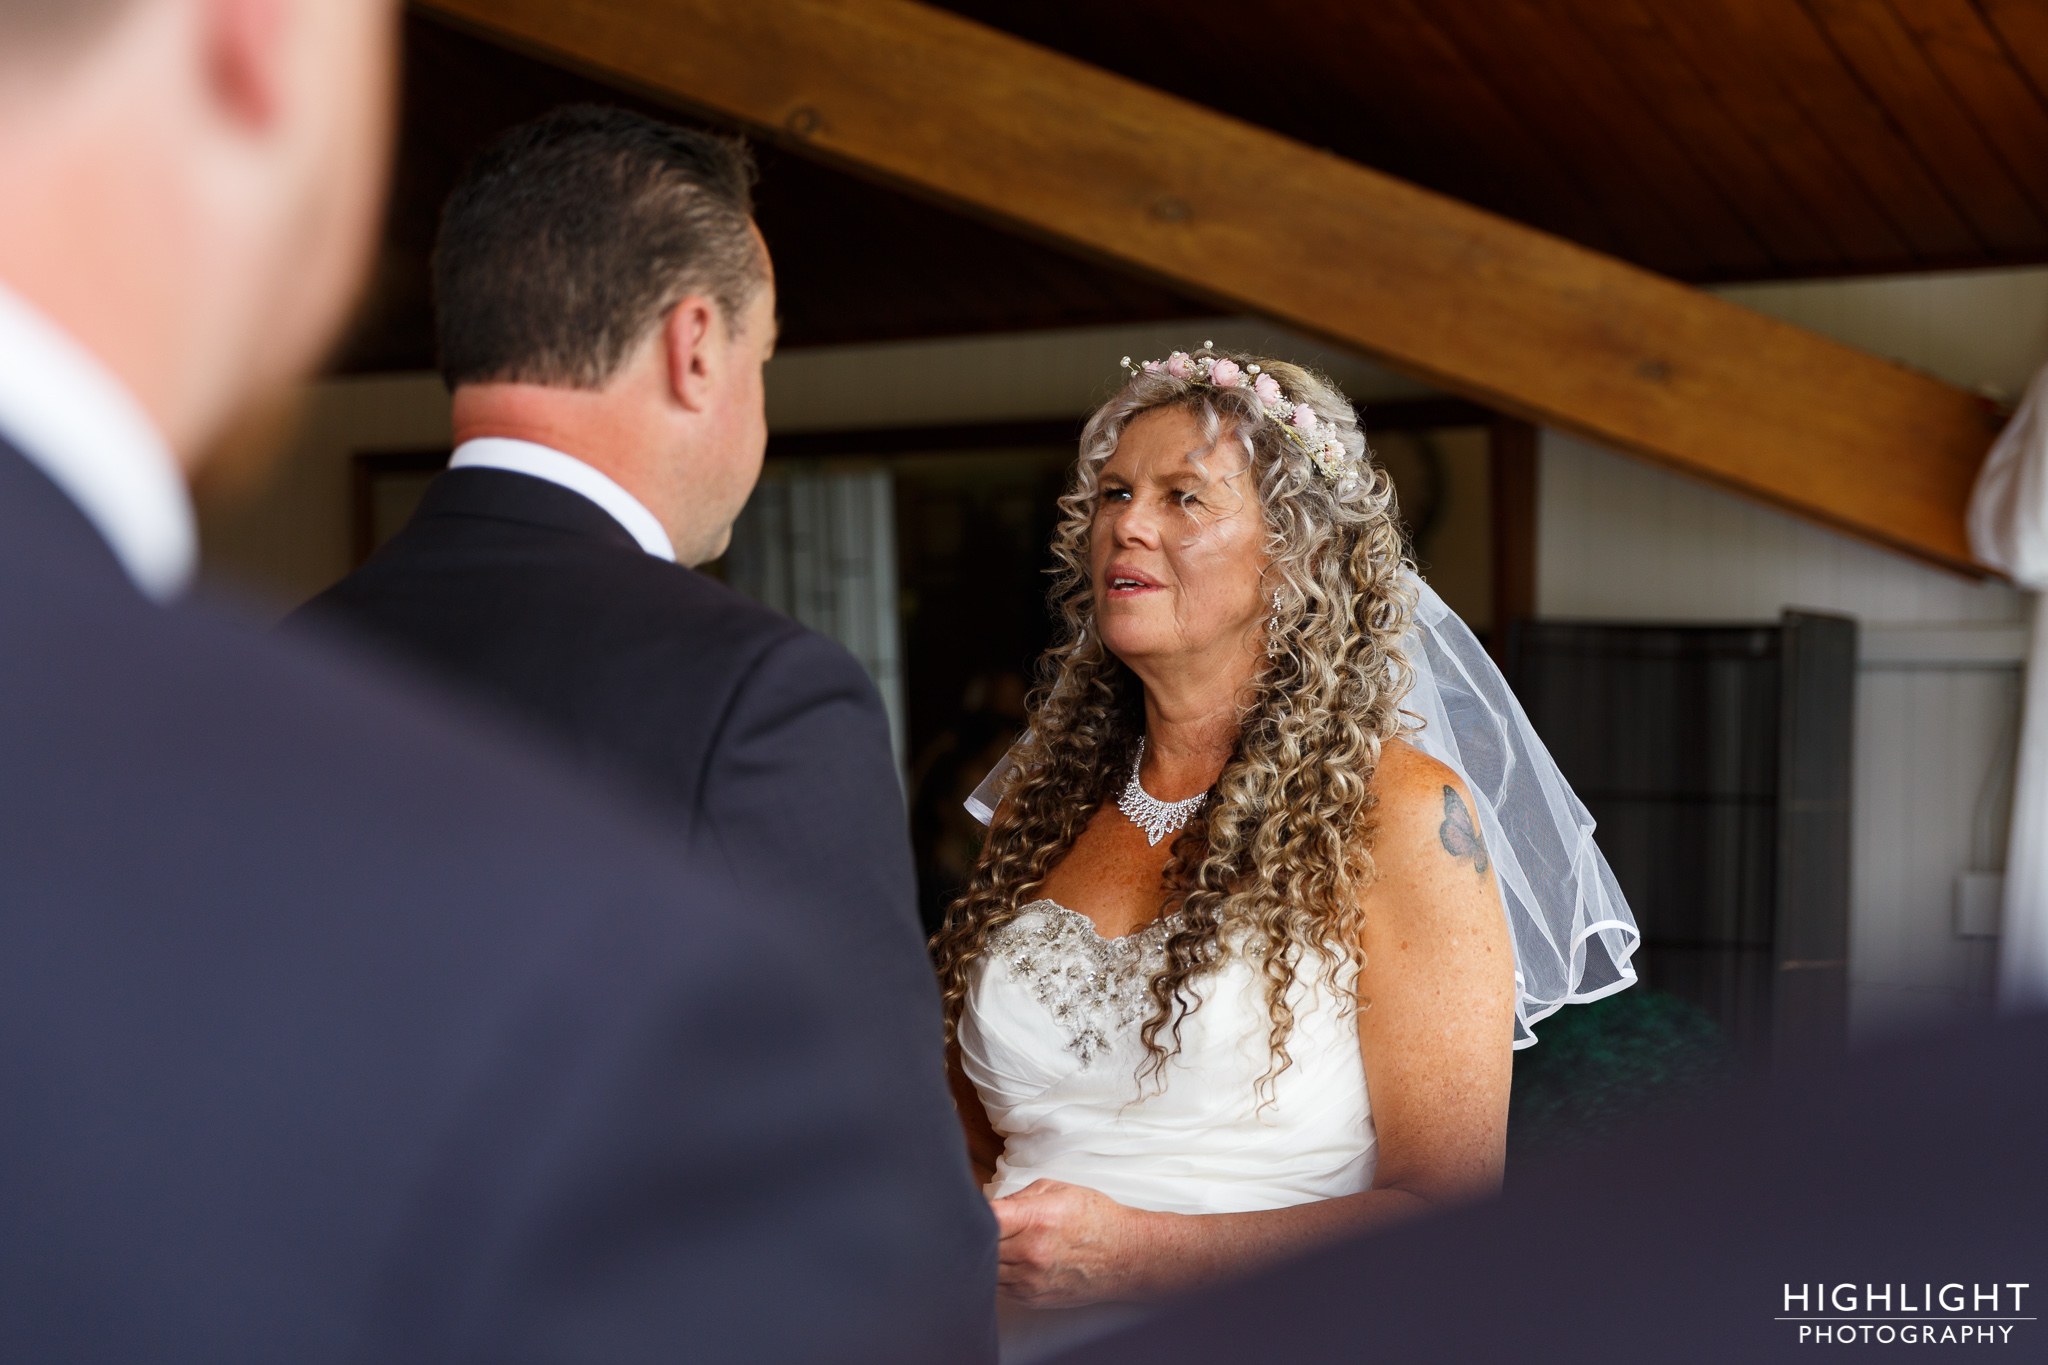 highlight_wedding_photography_palmerston_north_manawatu_chalet_wedding-42.jpg